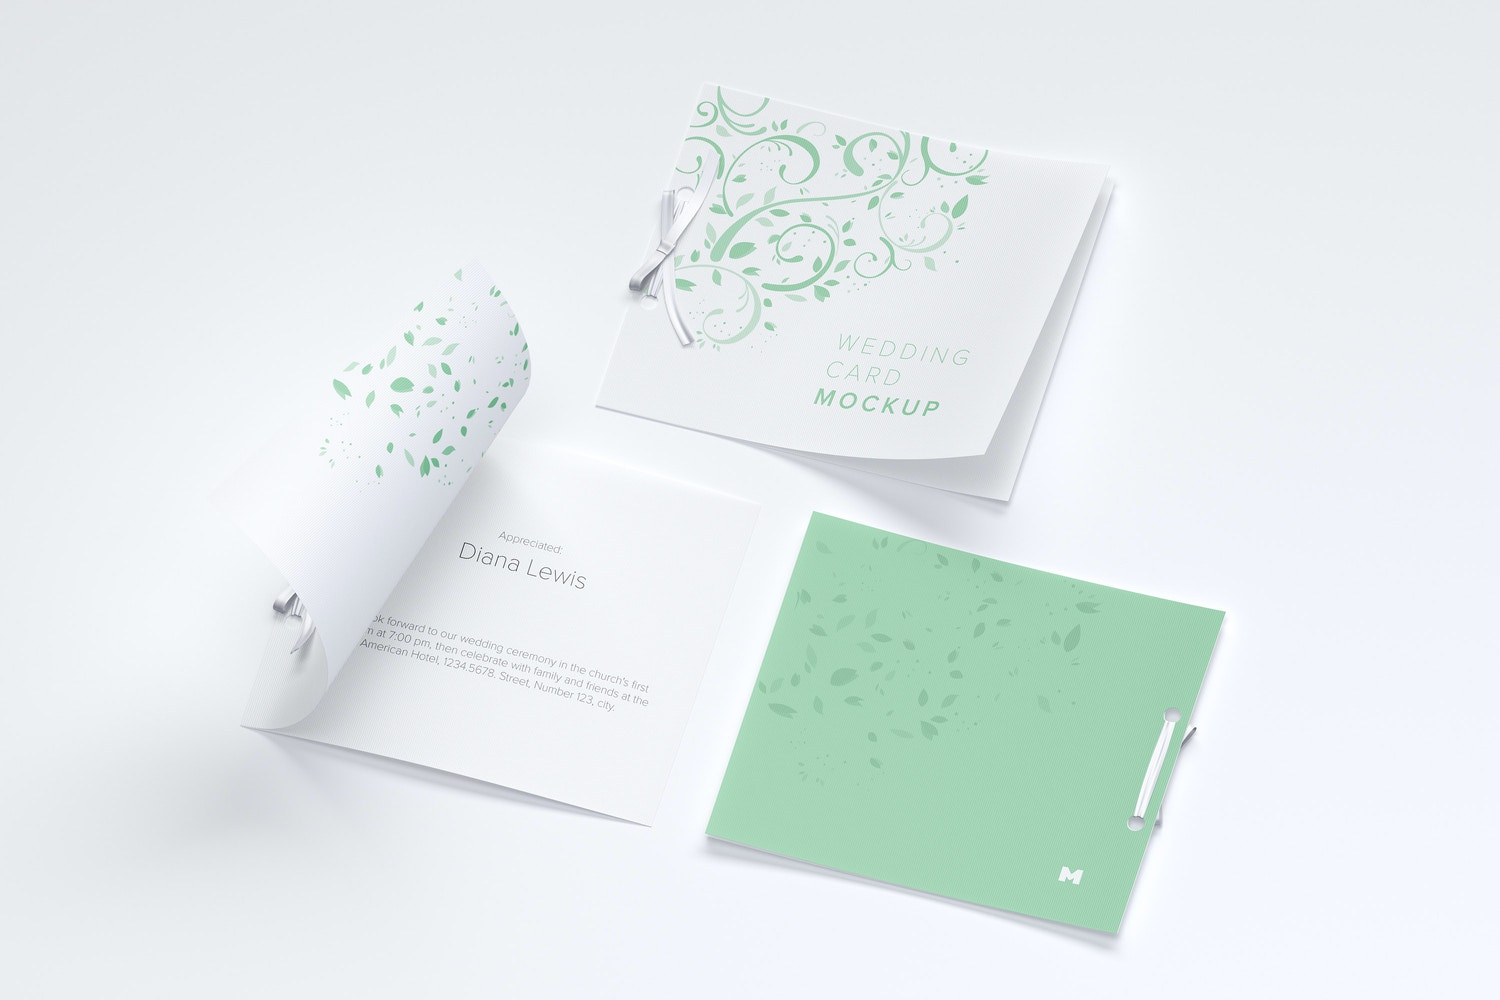 Wedding Card Mockup, Covers and Inner Pages by Original Mockups on Original Mockups